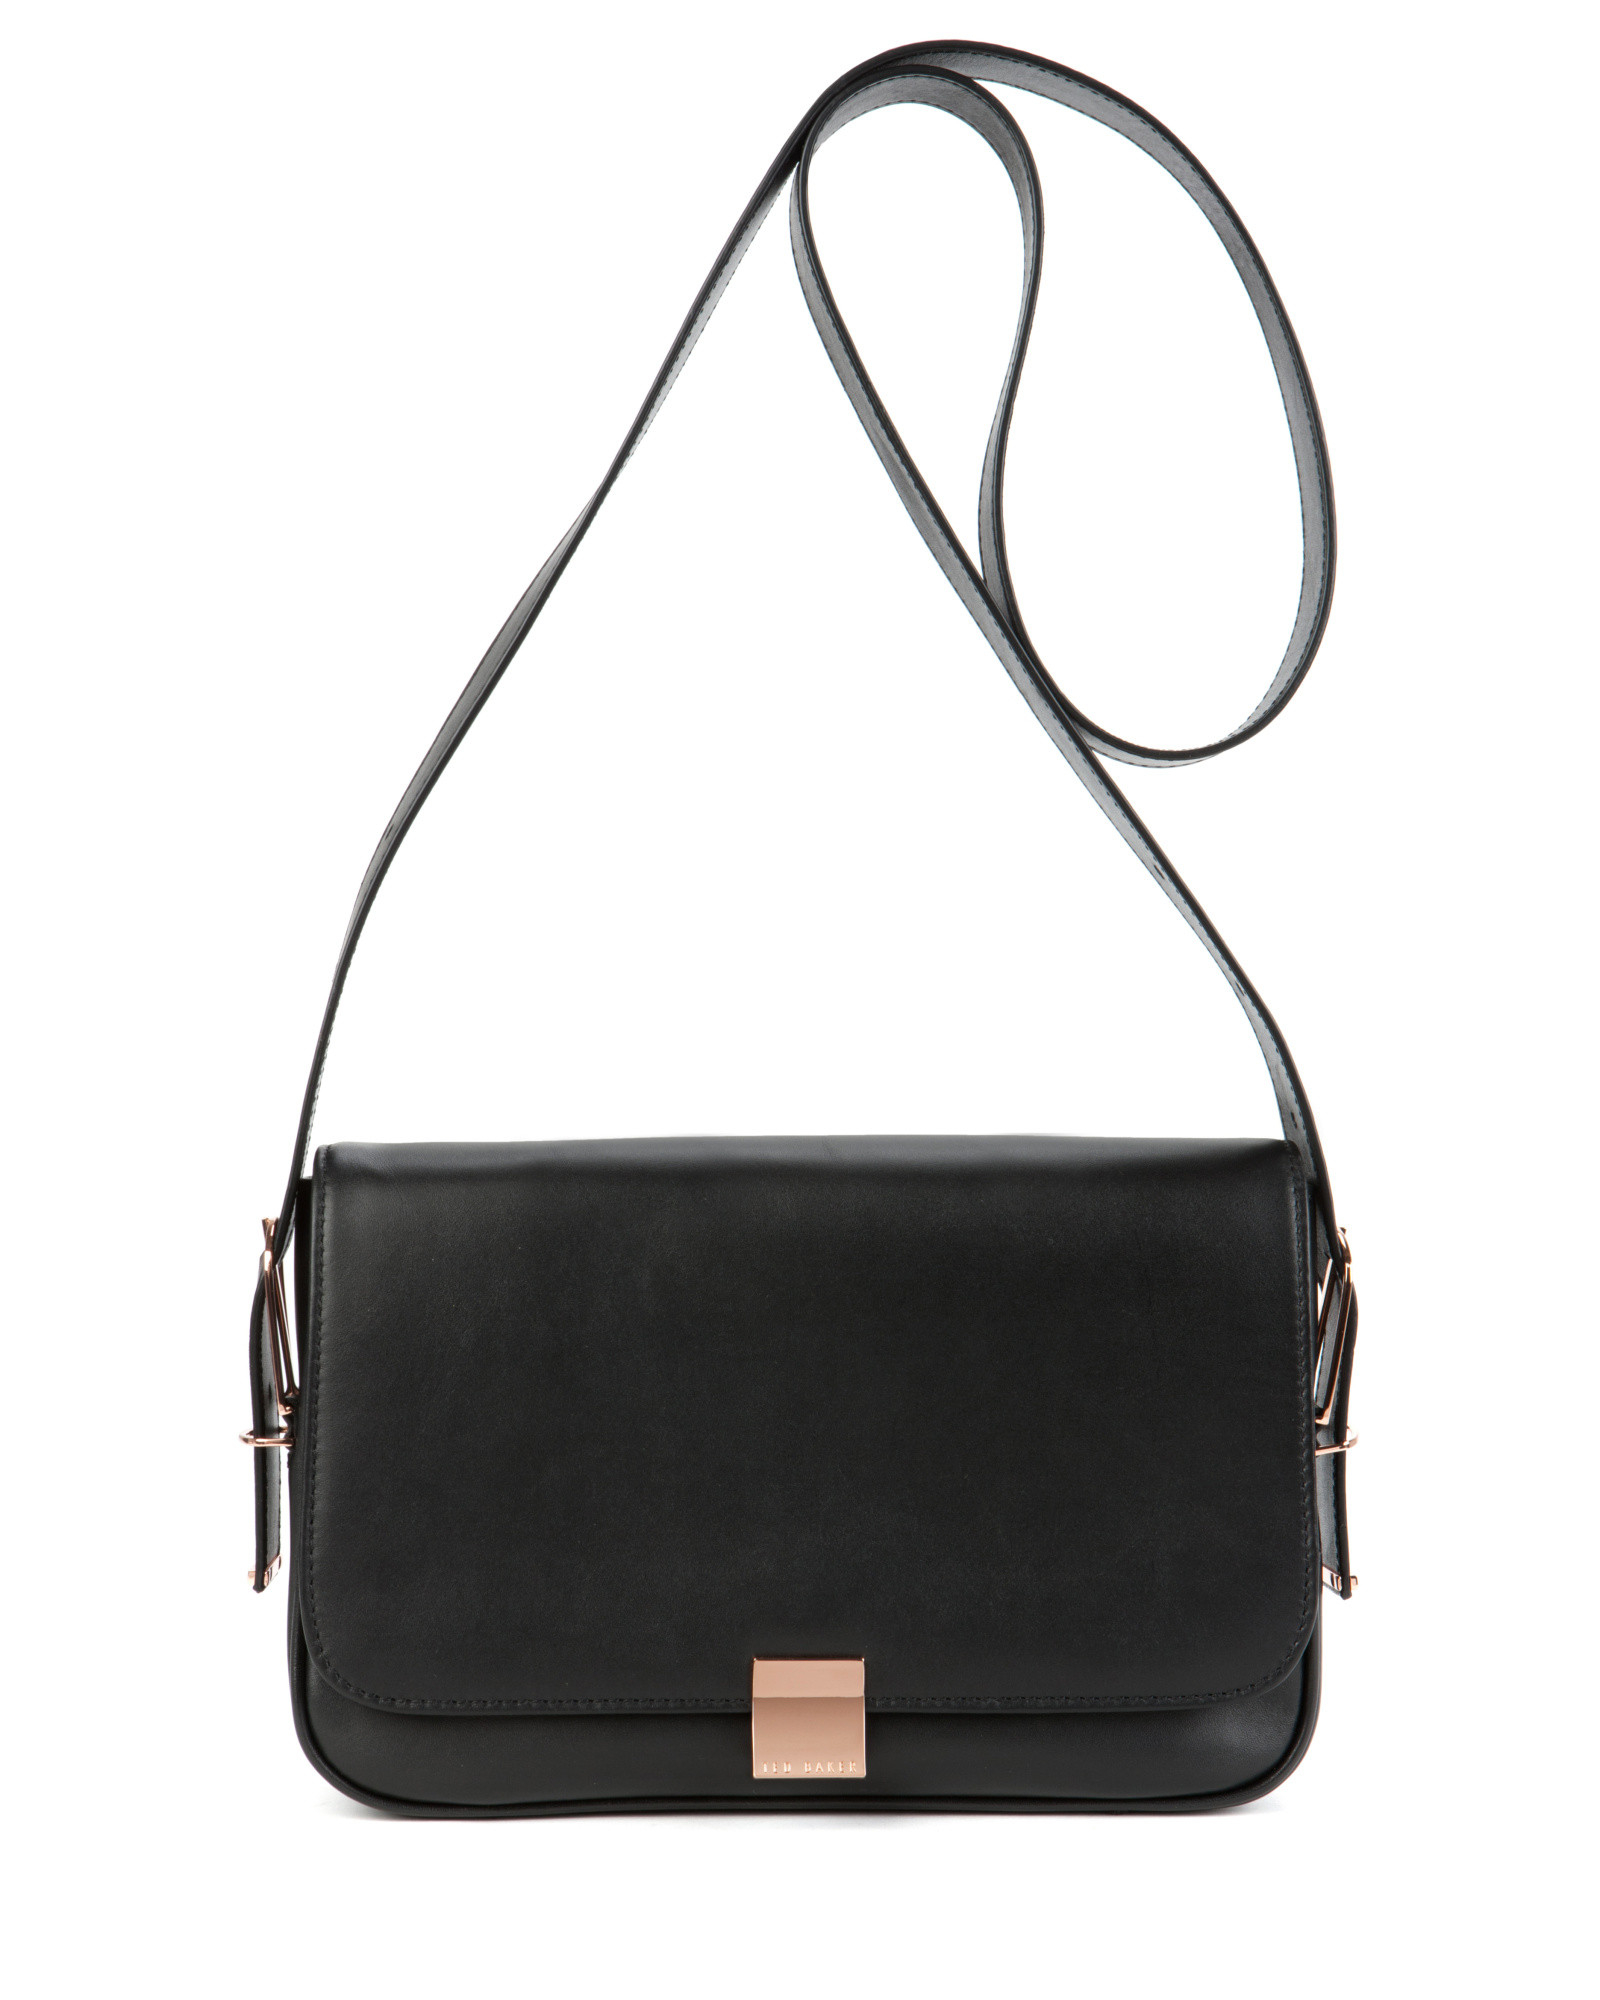 Ted baker Leather Sling Bag in Black | Lyst